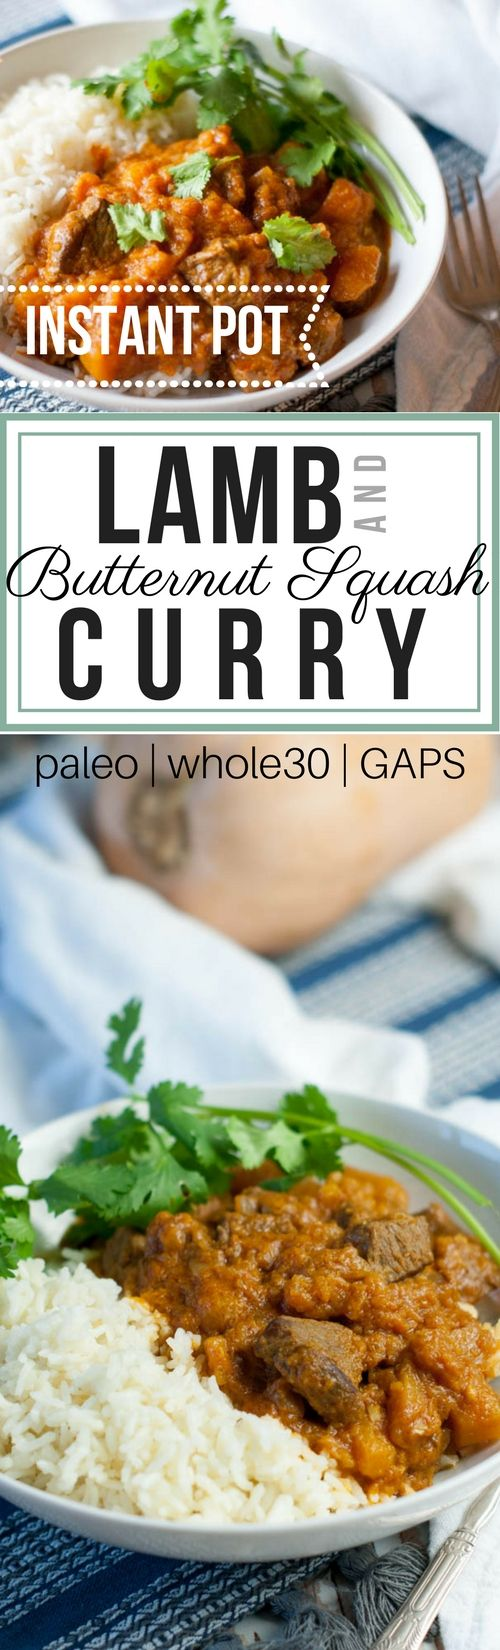 Lamb and Butternut Squash Curry recipe made in the electric pressure cooker (Instant Pot) starts with tender grass-fed lamb, diced butternut squash, creamy coconut milk, and loads of curry flavor.